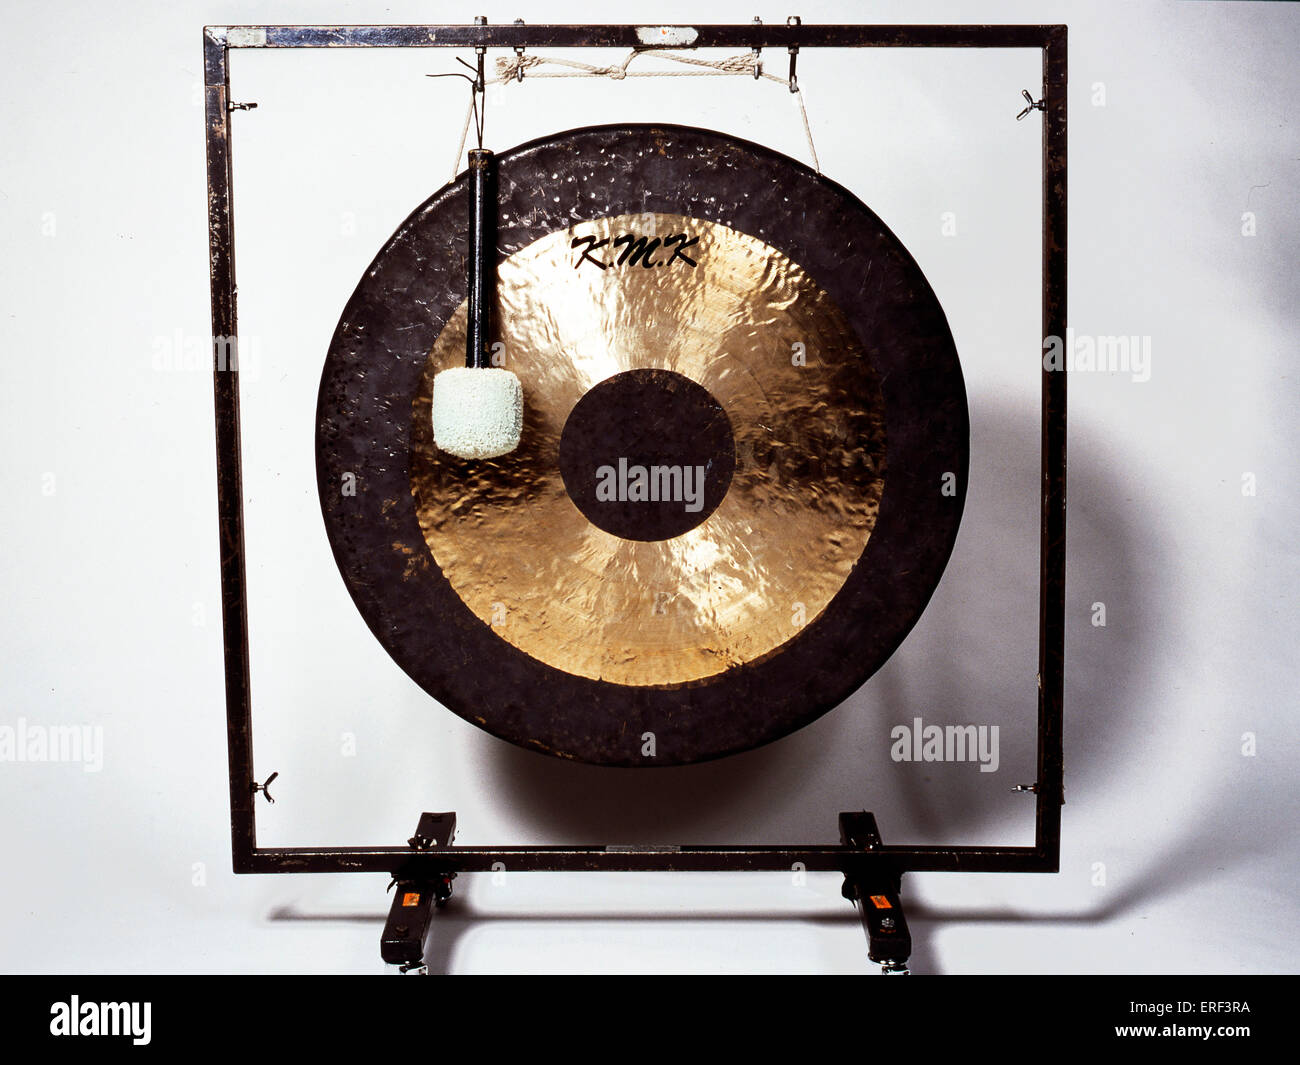 tam tam or tamtam percussion instrument similar to gong stock photo royalty free image. Black Bedroom Furniture Sets. Home Design Ideas